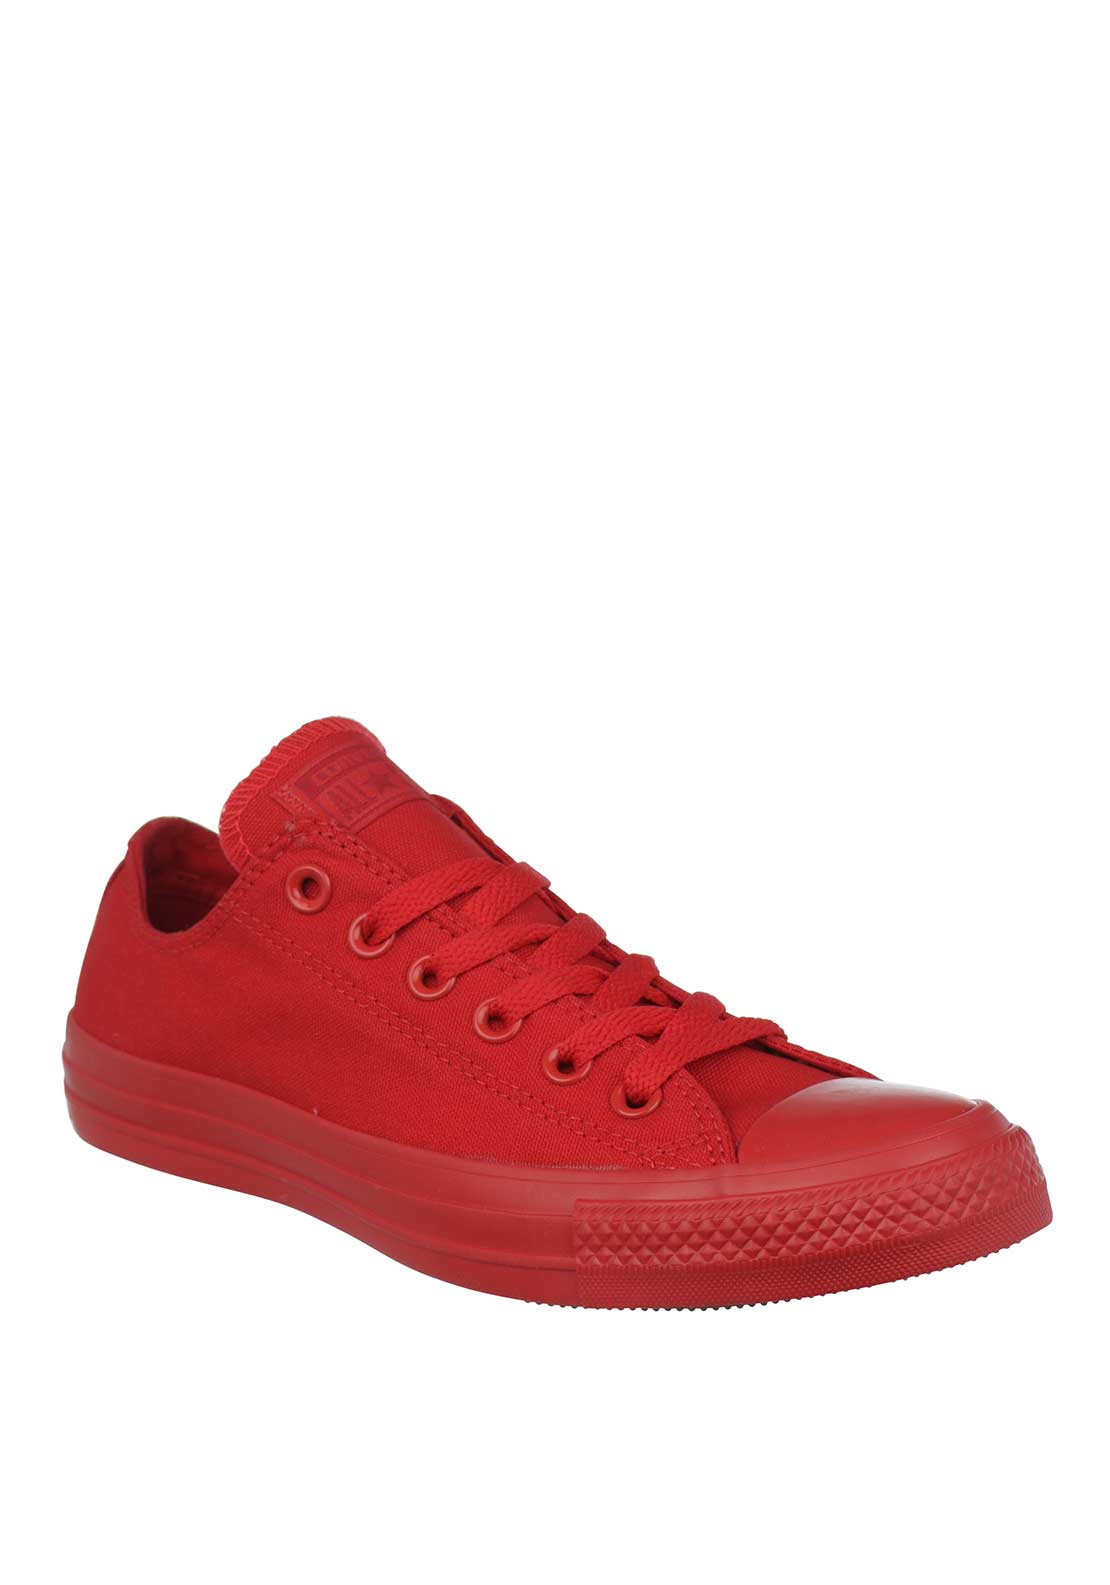 Converse Womens All Star Ankle Trainers, Red